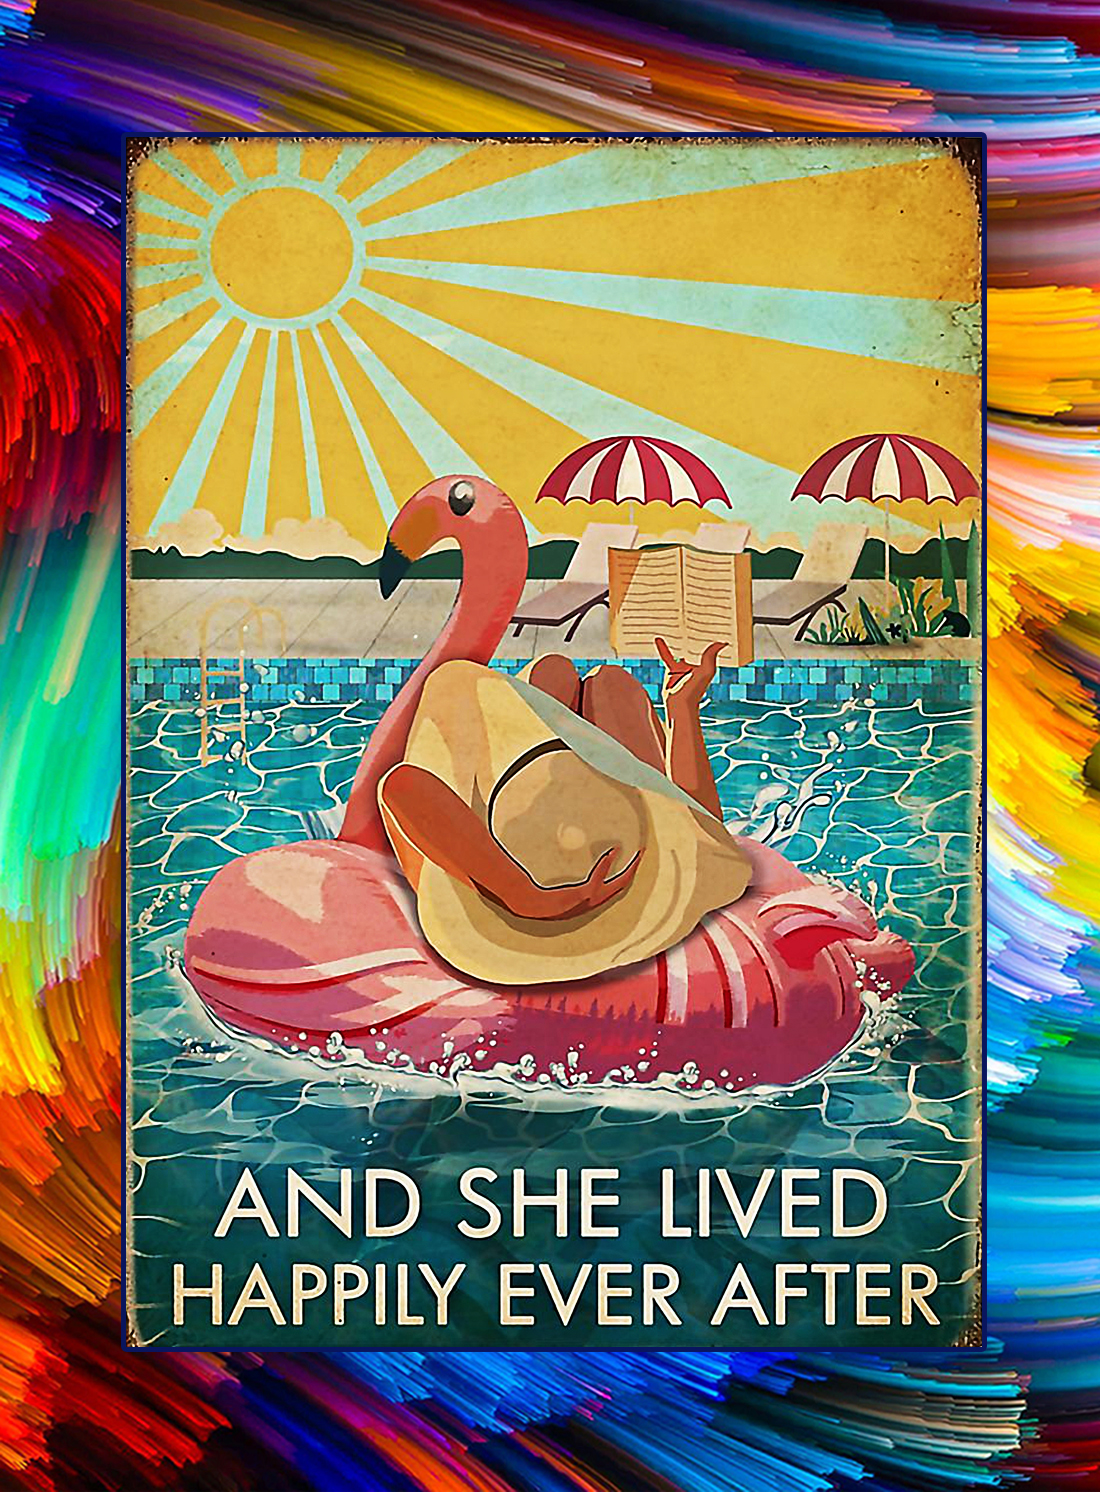 Flamingo and she lived happily ever after poster - A4